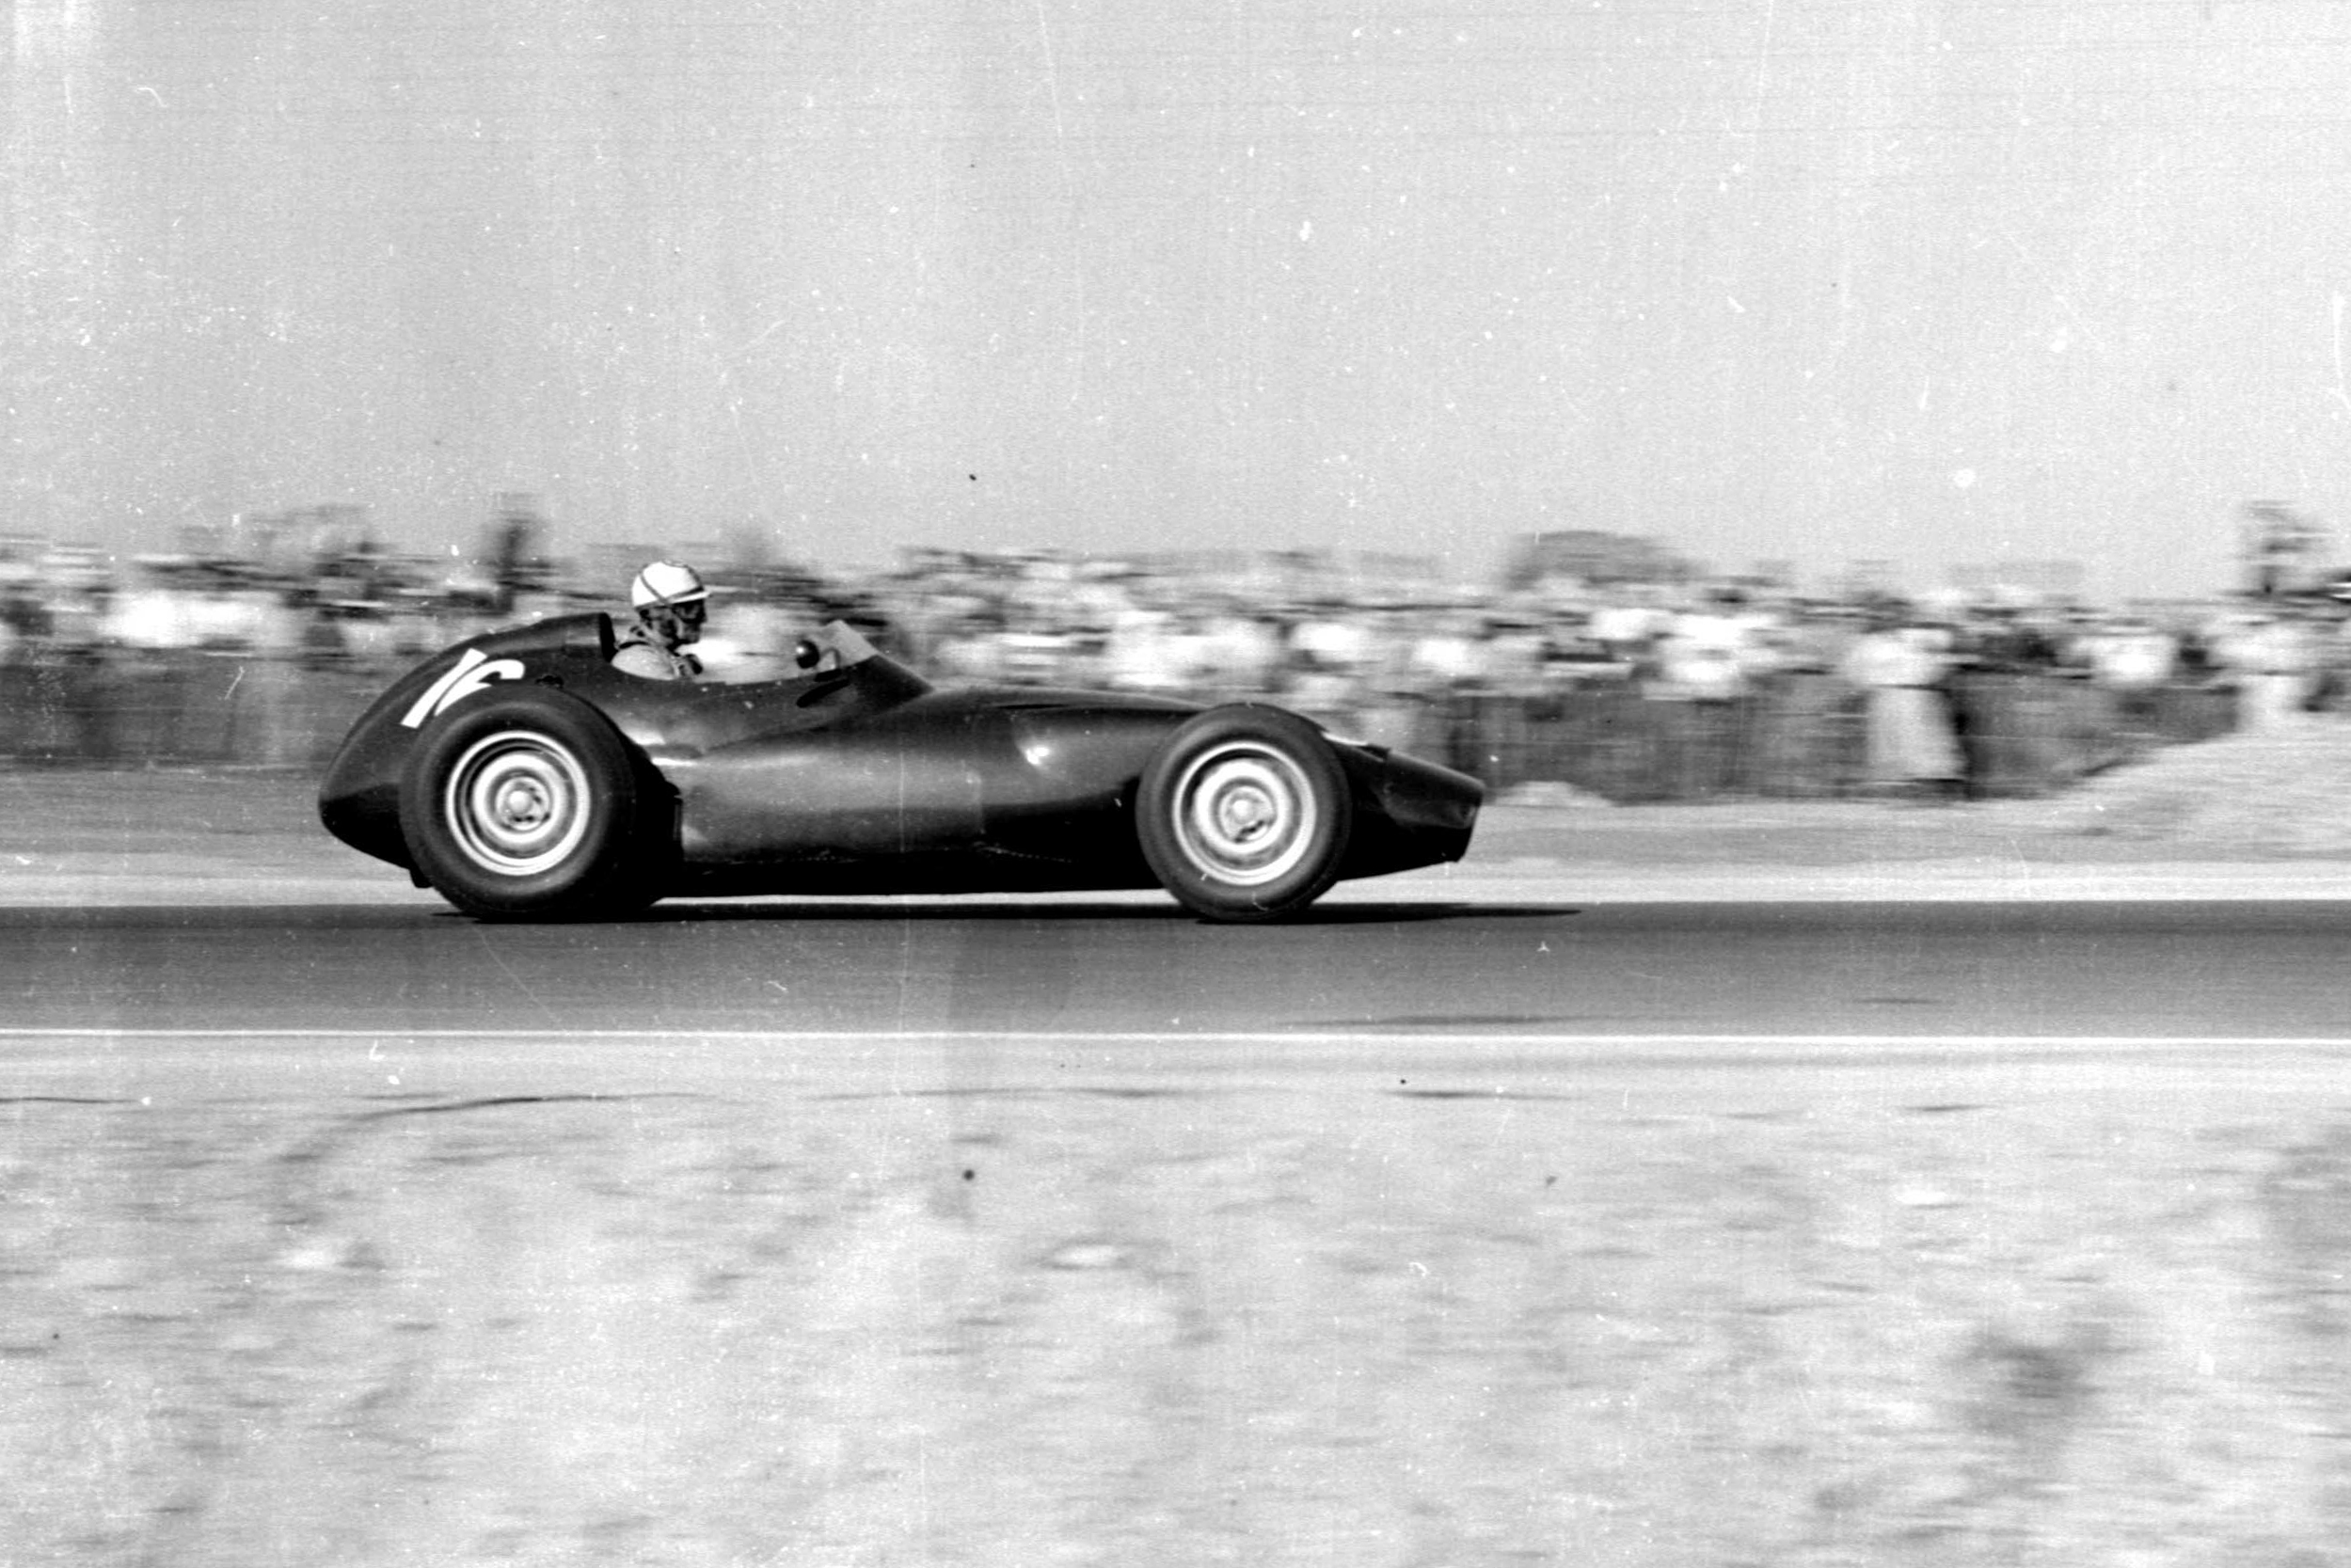 Harry Schell driving his BRM P25 to 5th place.